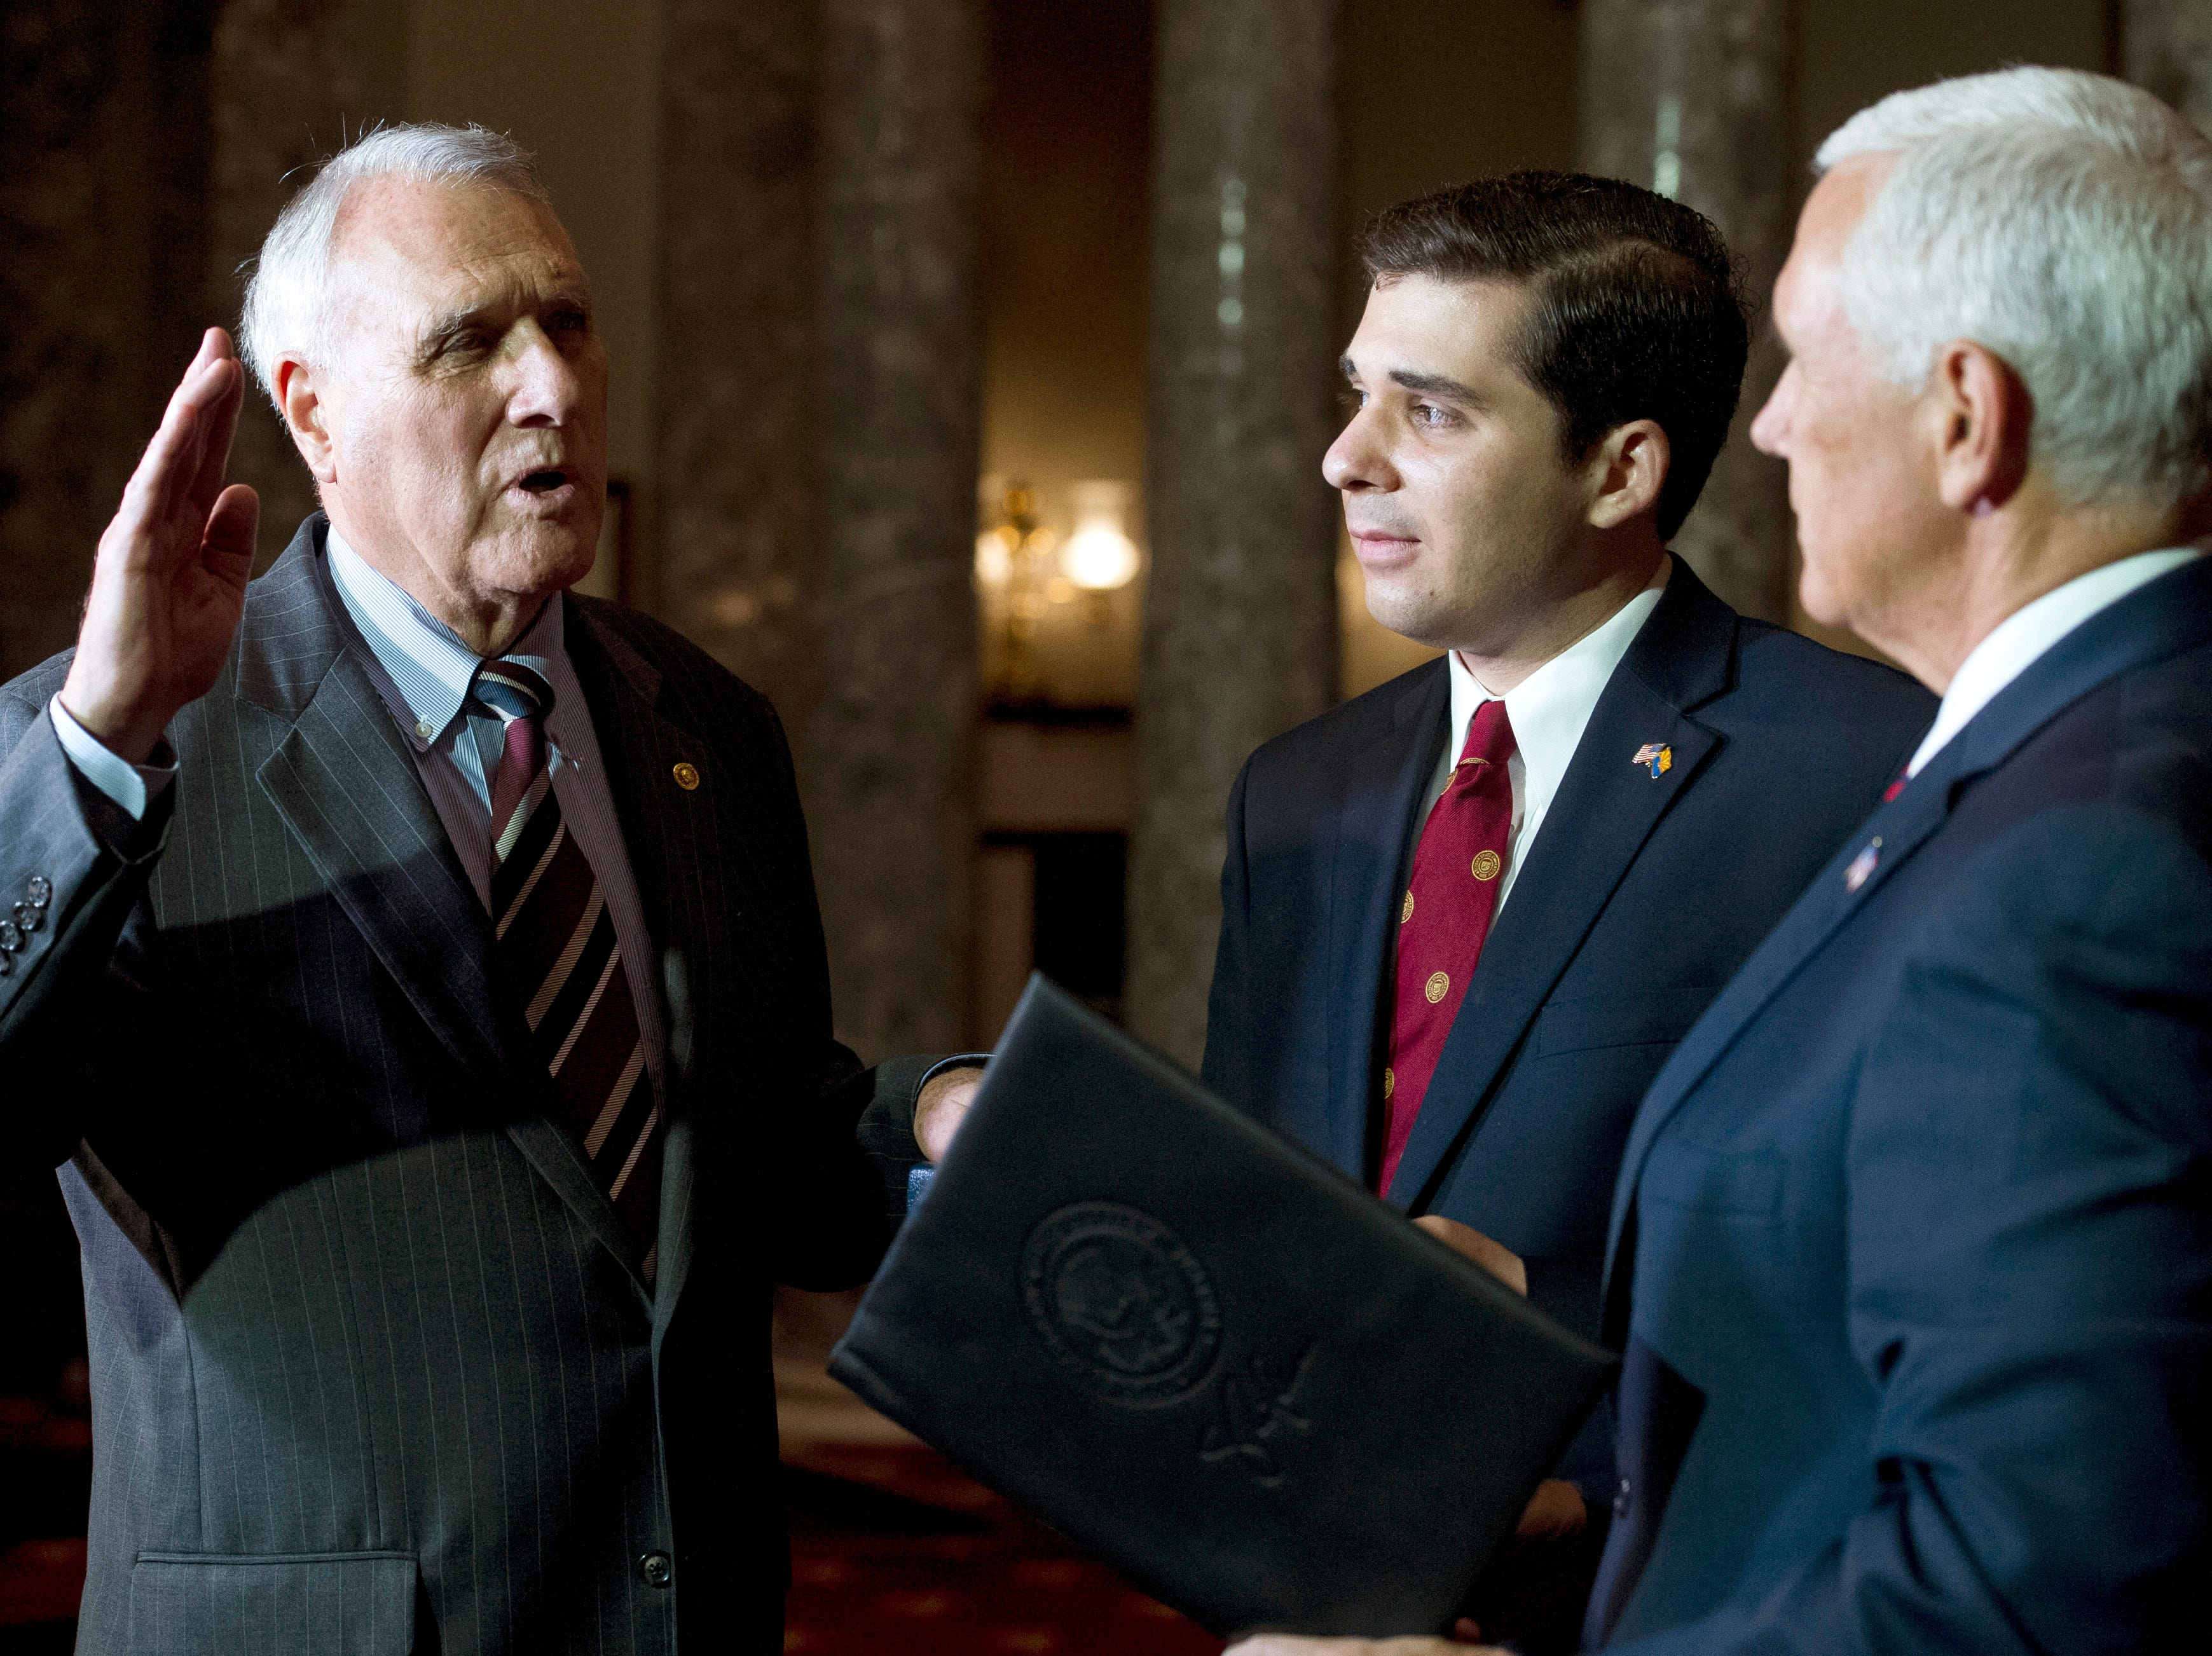 Vice President Mike Pence (right) administers the oath of office to Sen. Jon Kyl, R-Ariz., while his grandson Christopher Gavin holds a Bible, during a ceremonial swearing-in at the Old Senate Chamber on Capitol Hill, in Washington, on Sept. 5, 2018.